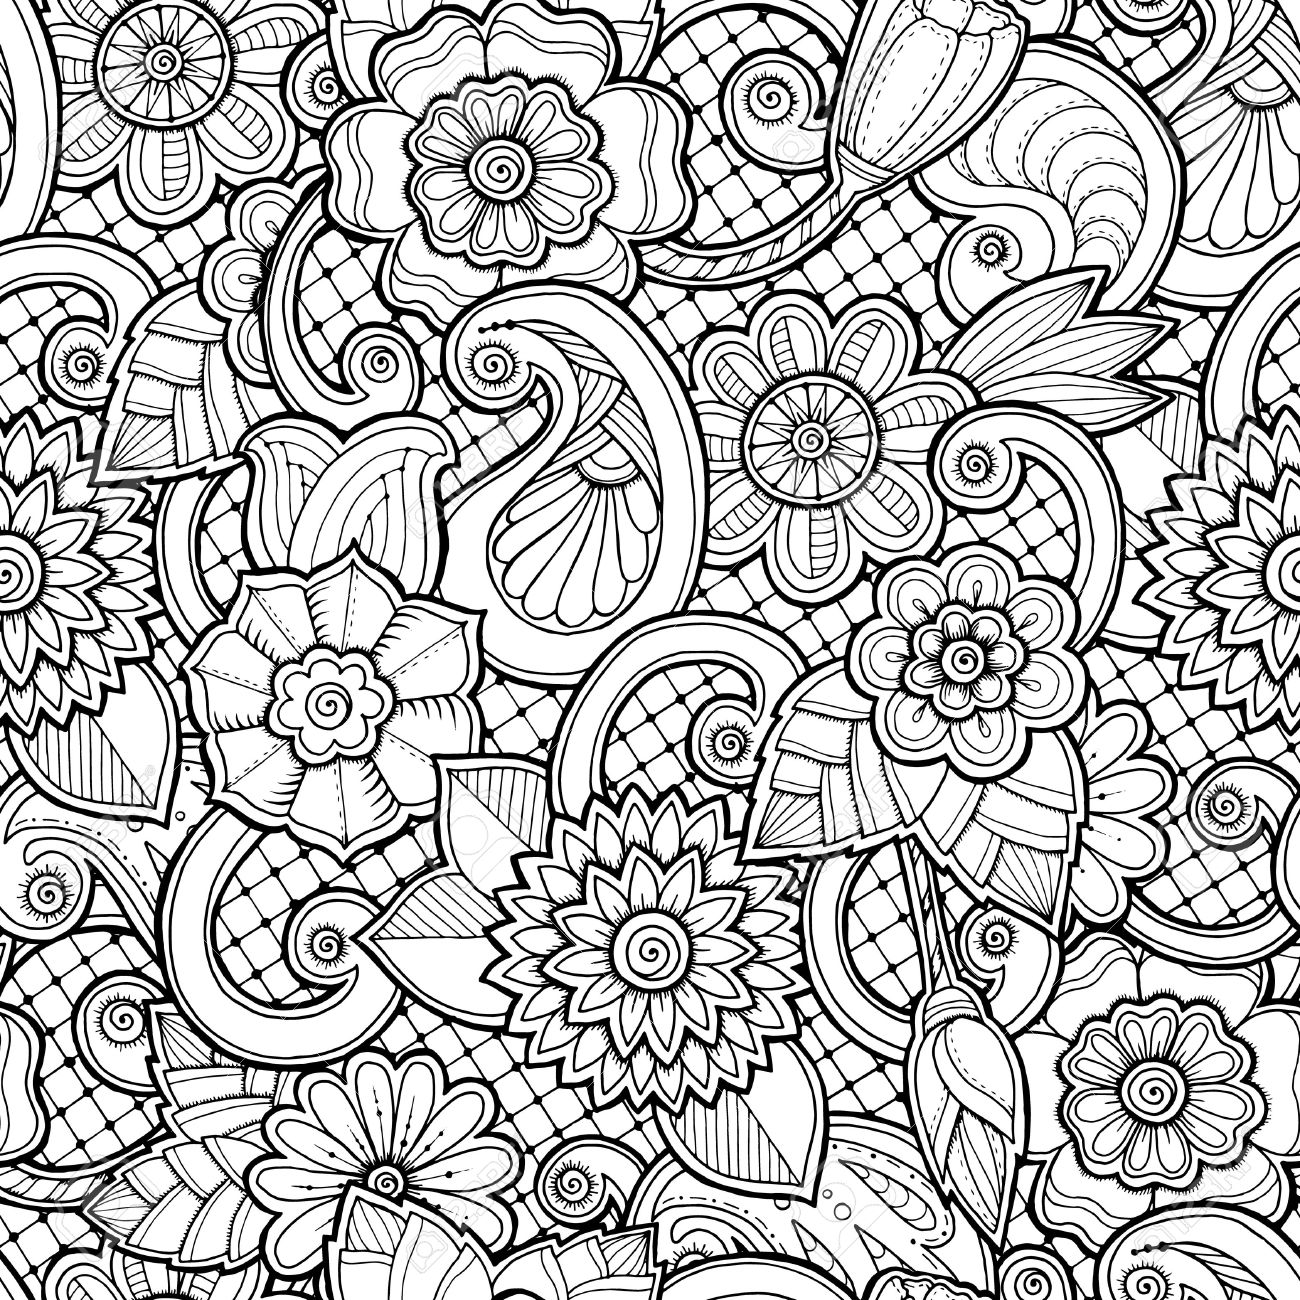 The wallpaper coloring book - Doodle Seamless Background In Vector With Doodles Flowers And Paisley Vector Ethnic Pattern Can